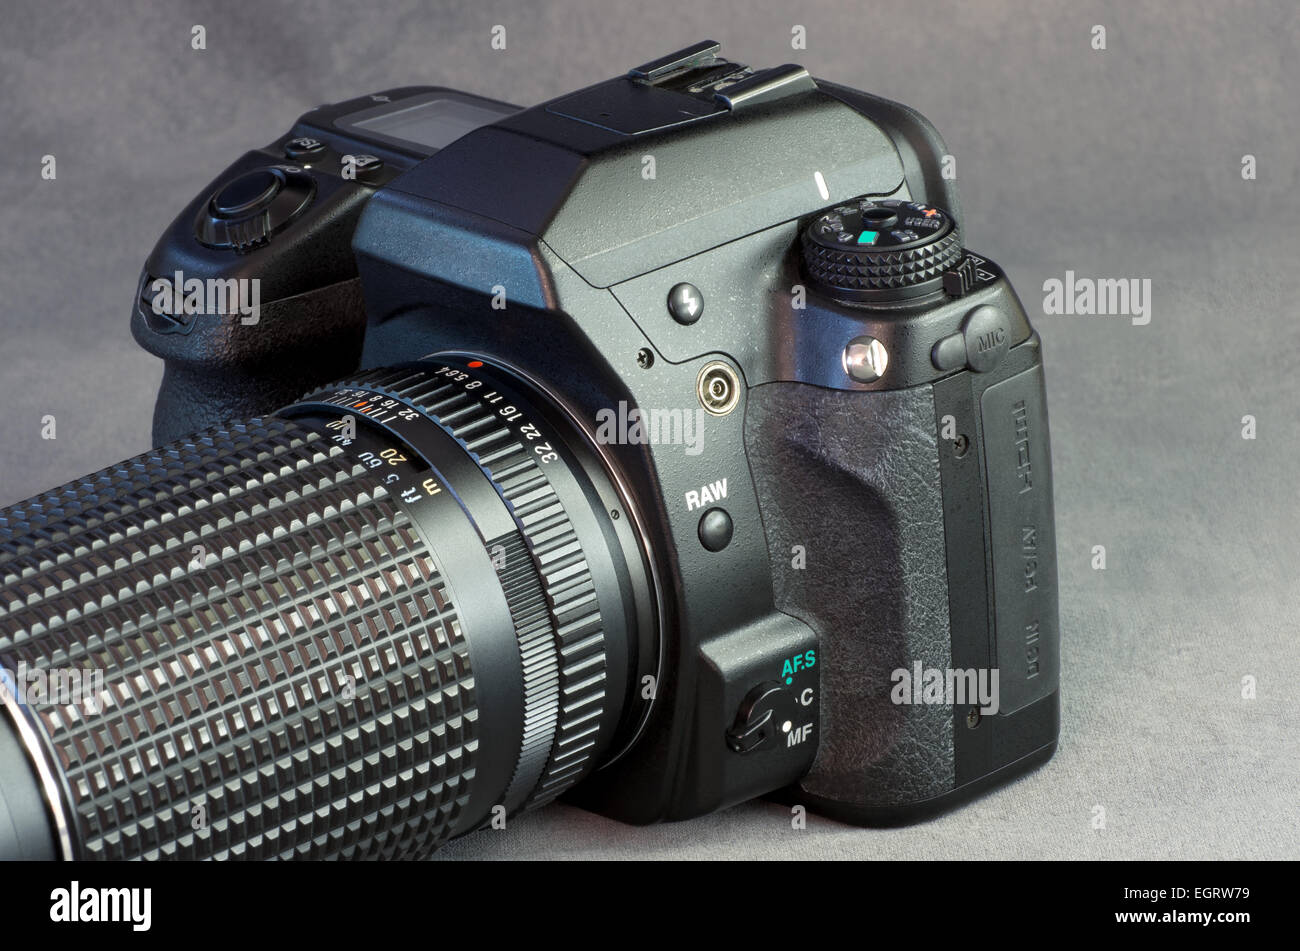 digital slr camera and lens closeup against gray background - Stock Image